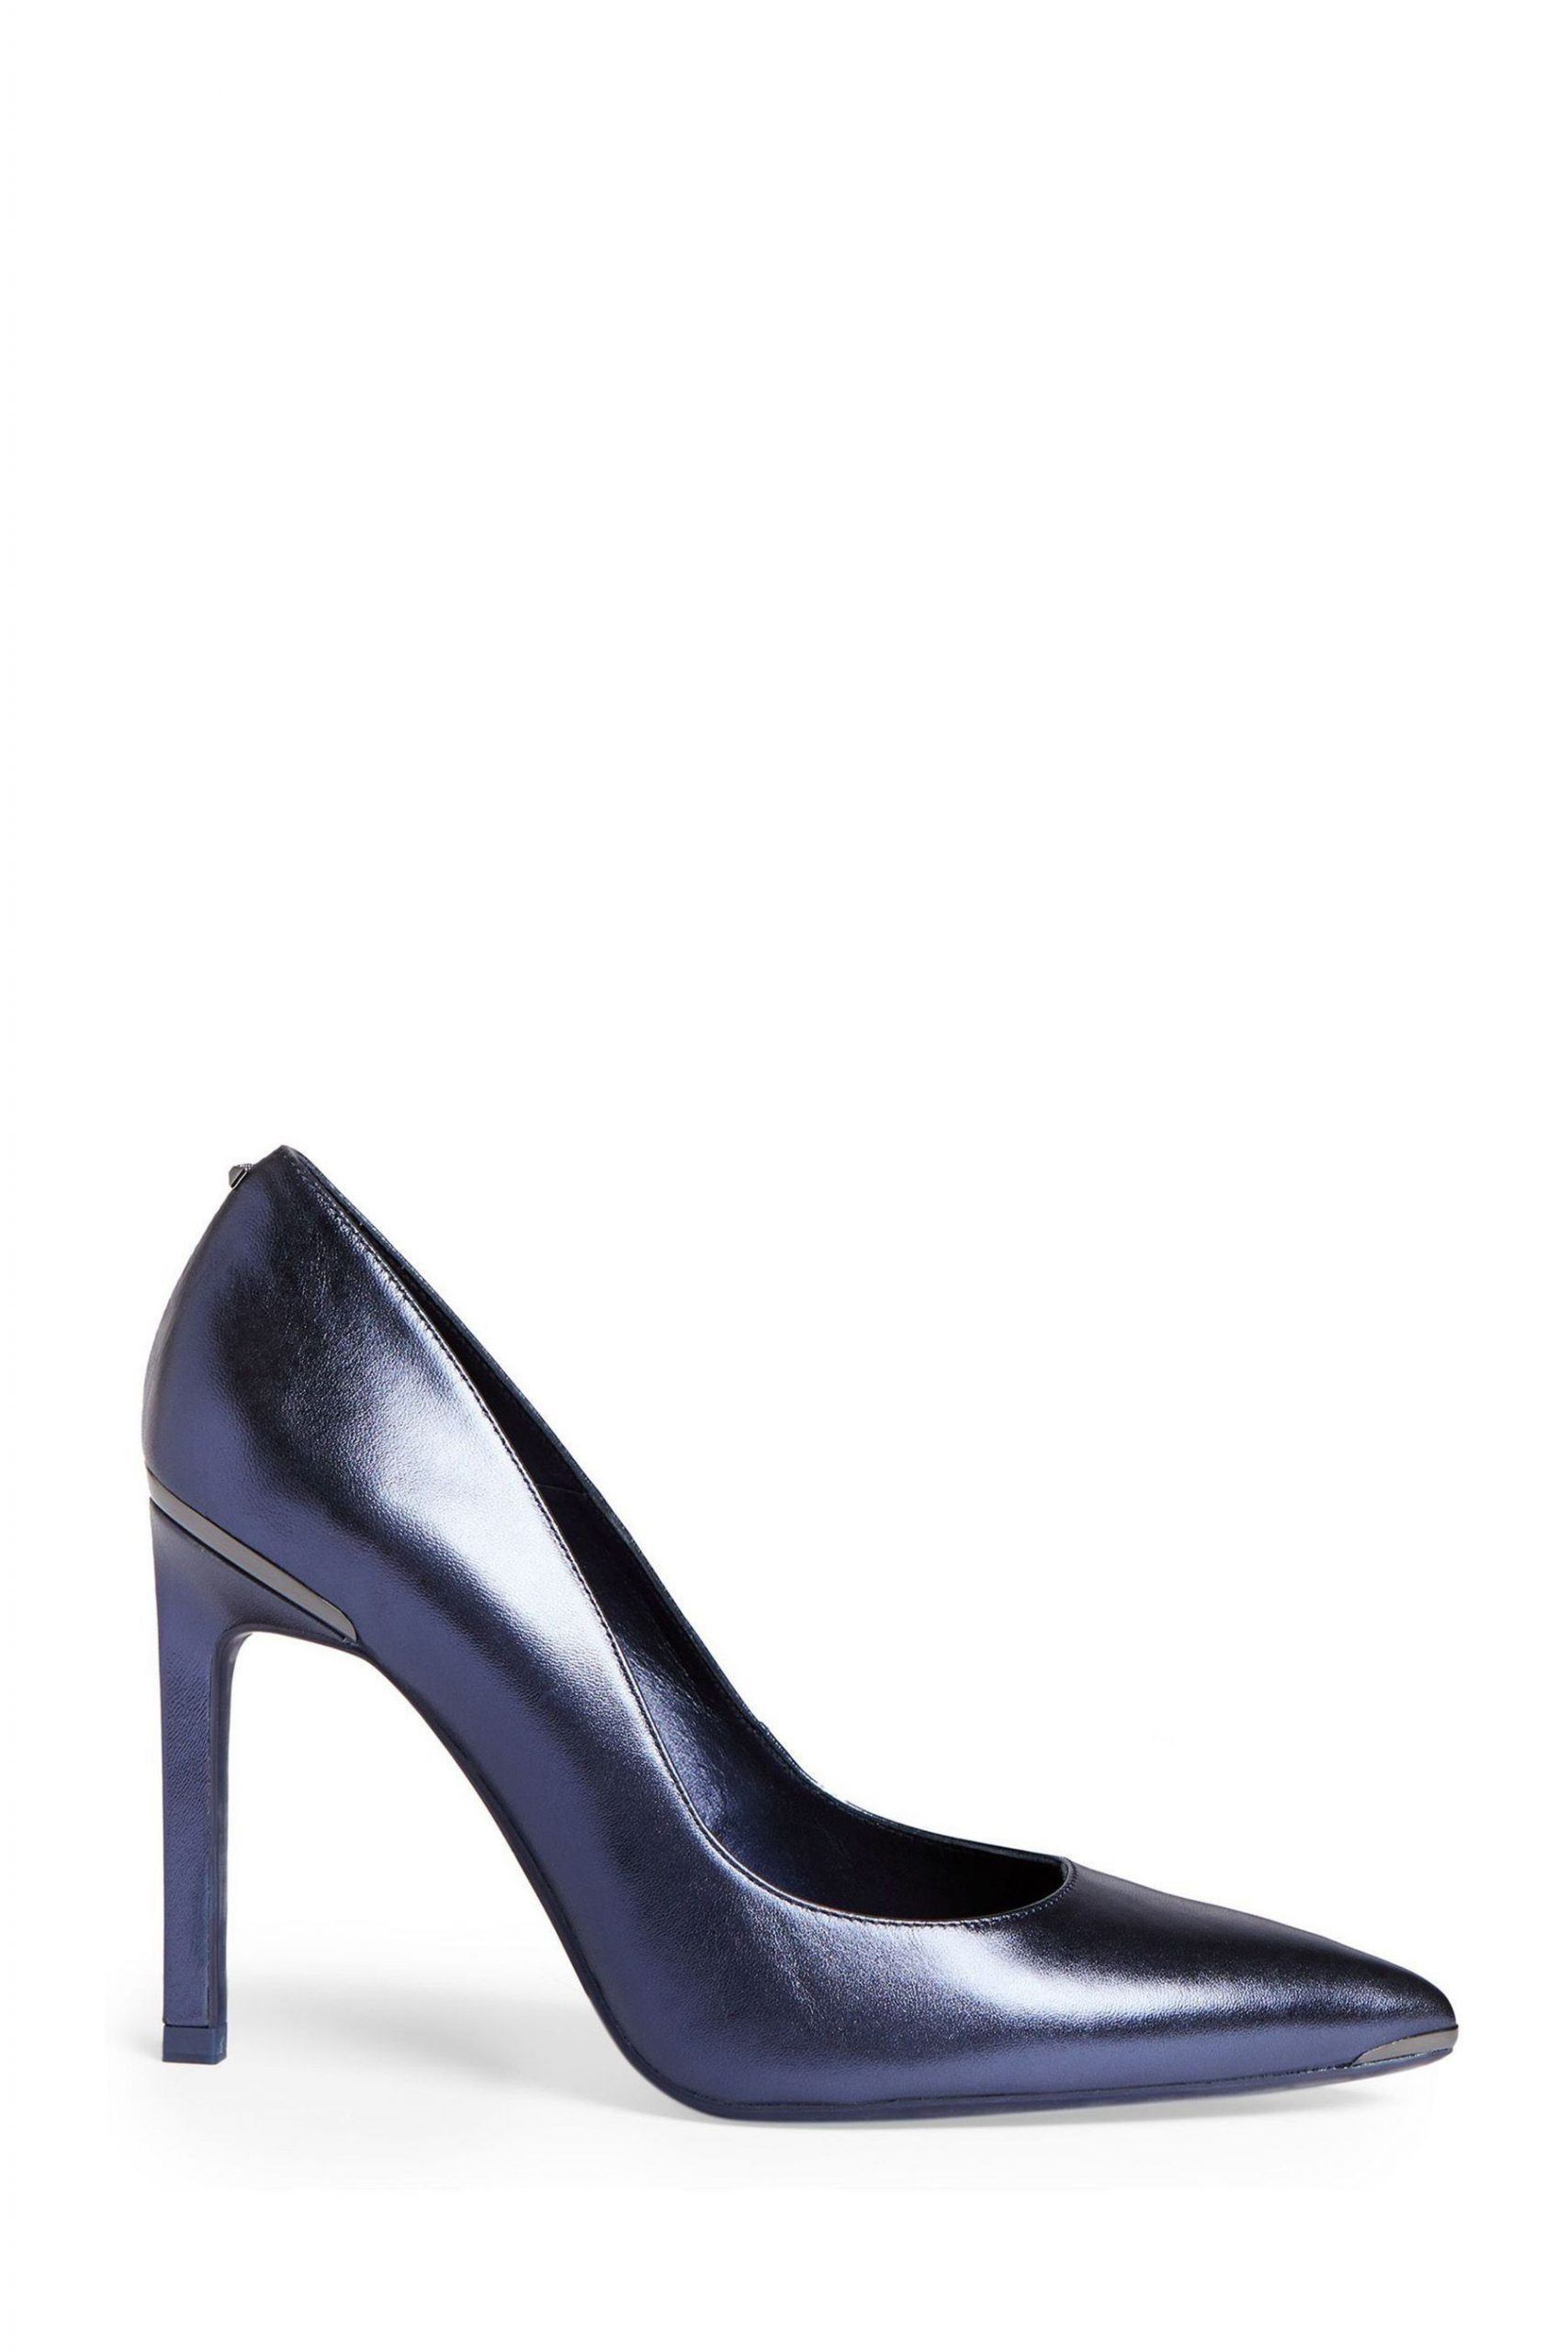 Buy Ted Baker Blue Metallic Court Shoes from the Next UK online shop